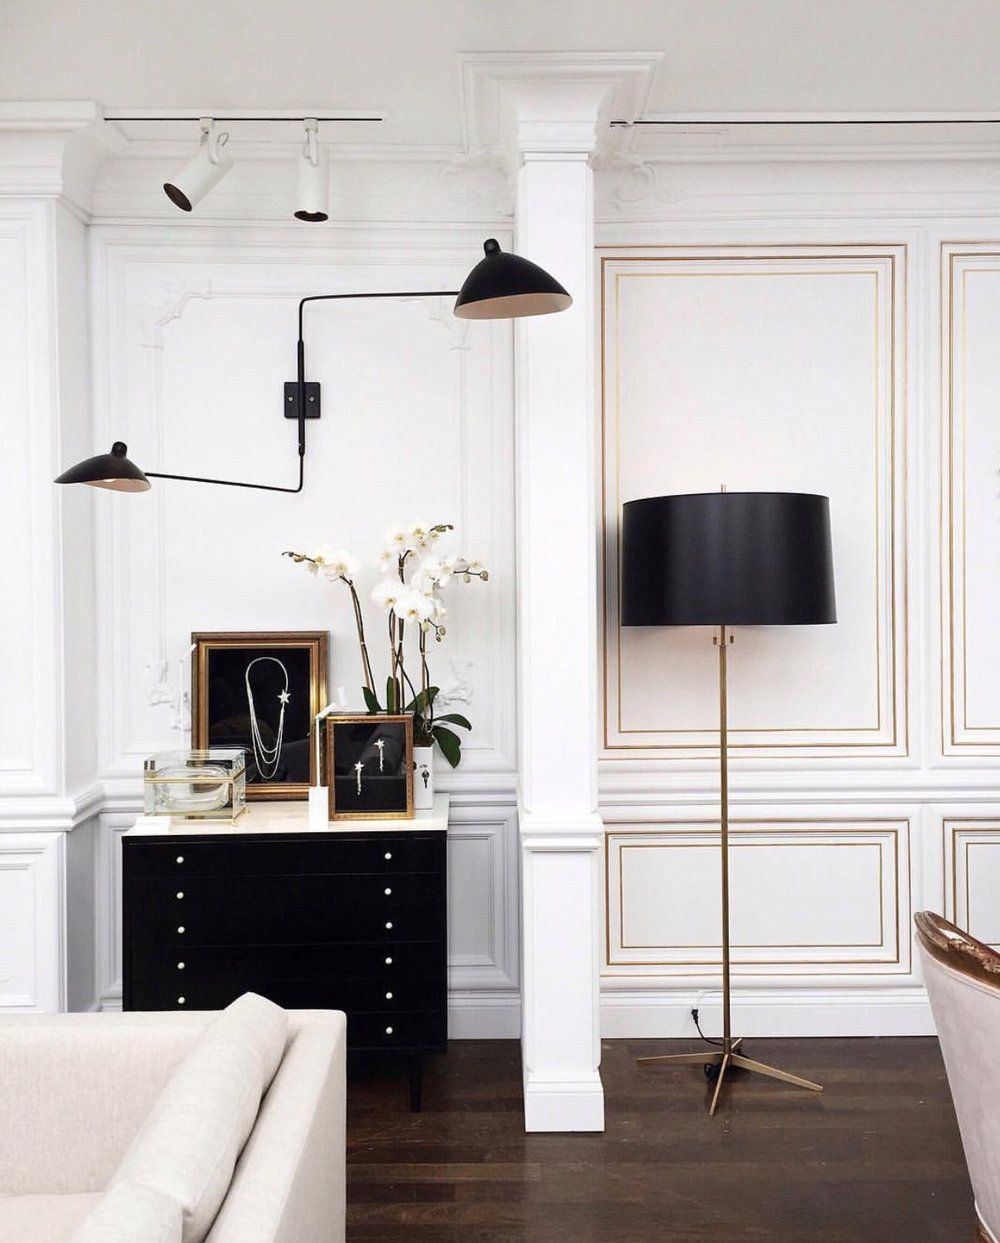 Charmant 7 Decorating Rules Inspired By Coco Chanel U2014 The Decorista